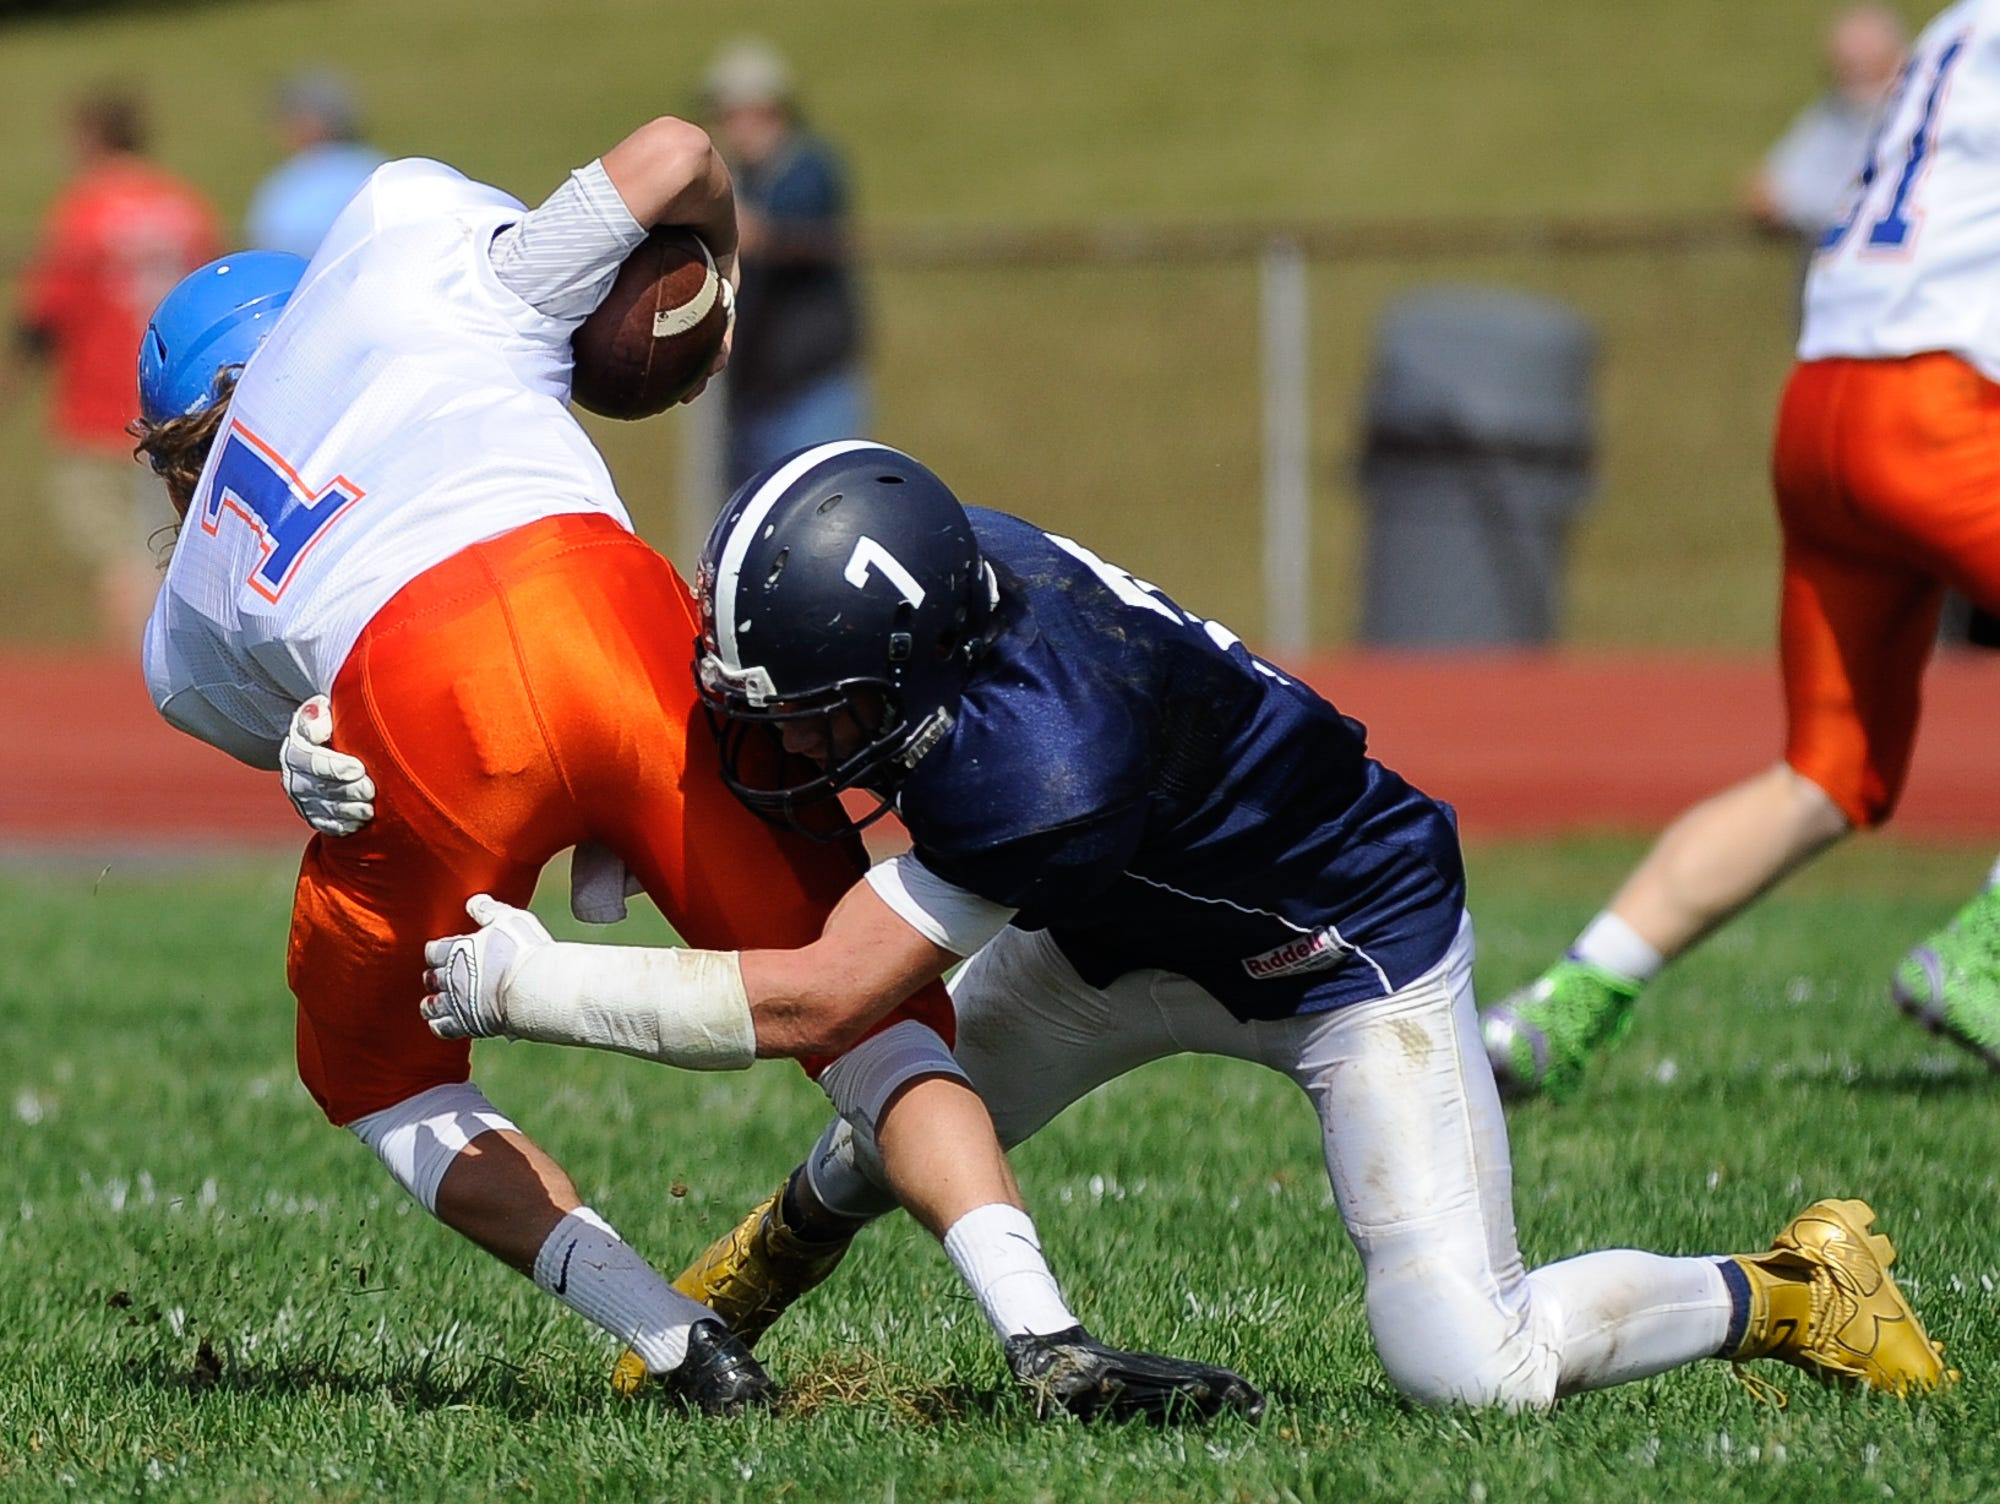 Lake Forest's #7 Ben Moore makes a tackle on Delmar's quarterback #1 James Adkins in their 19-14 win over Delmar on Saturday at Lake Forest High School.